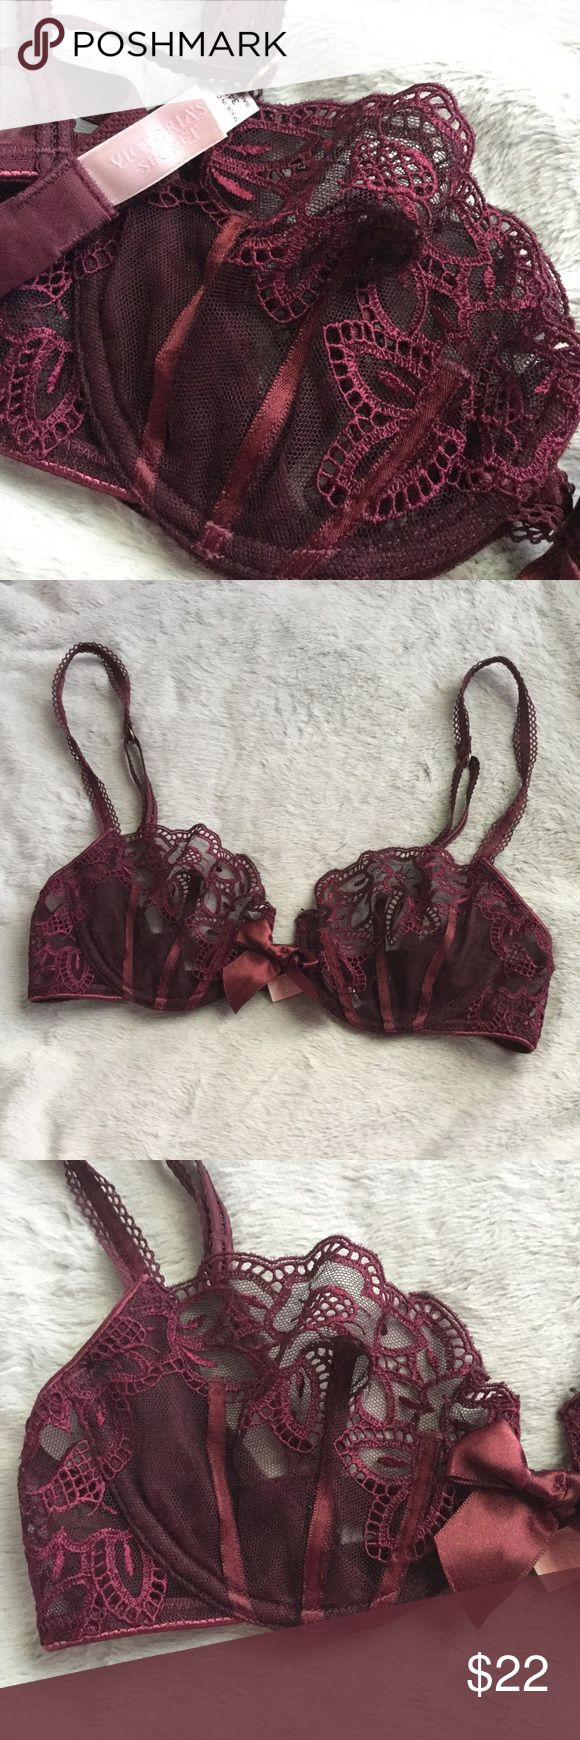 Victoria's Secret Unlined Lace Balconet Bra Beautiful unlined lace balconet bra by Victoria's Secret. Size 34B. Burgundy with gold detailing. Excellent condition. Victoria's Secret Intimates & Sleepwear Bras